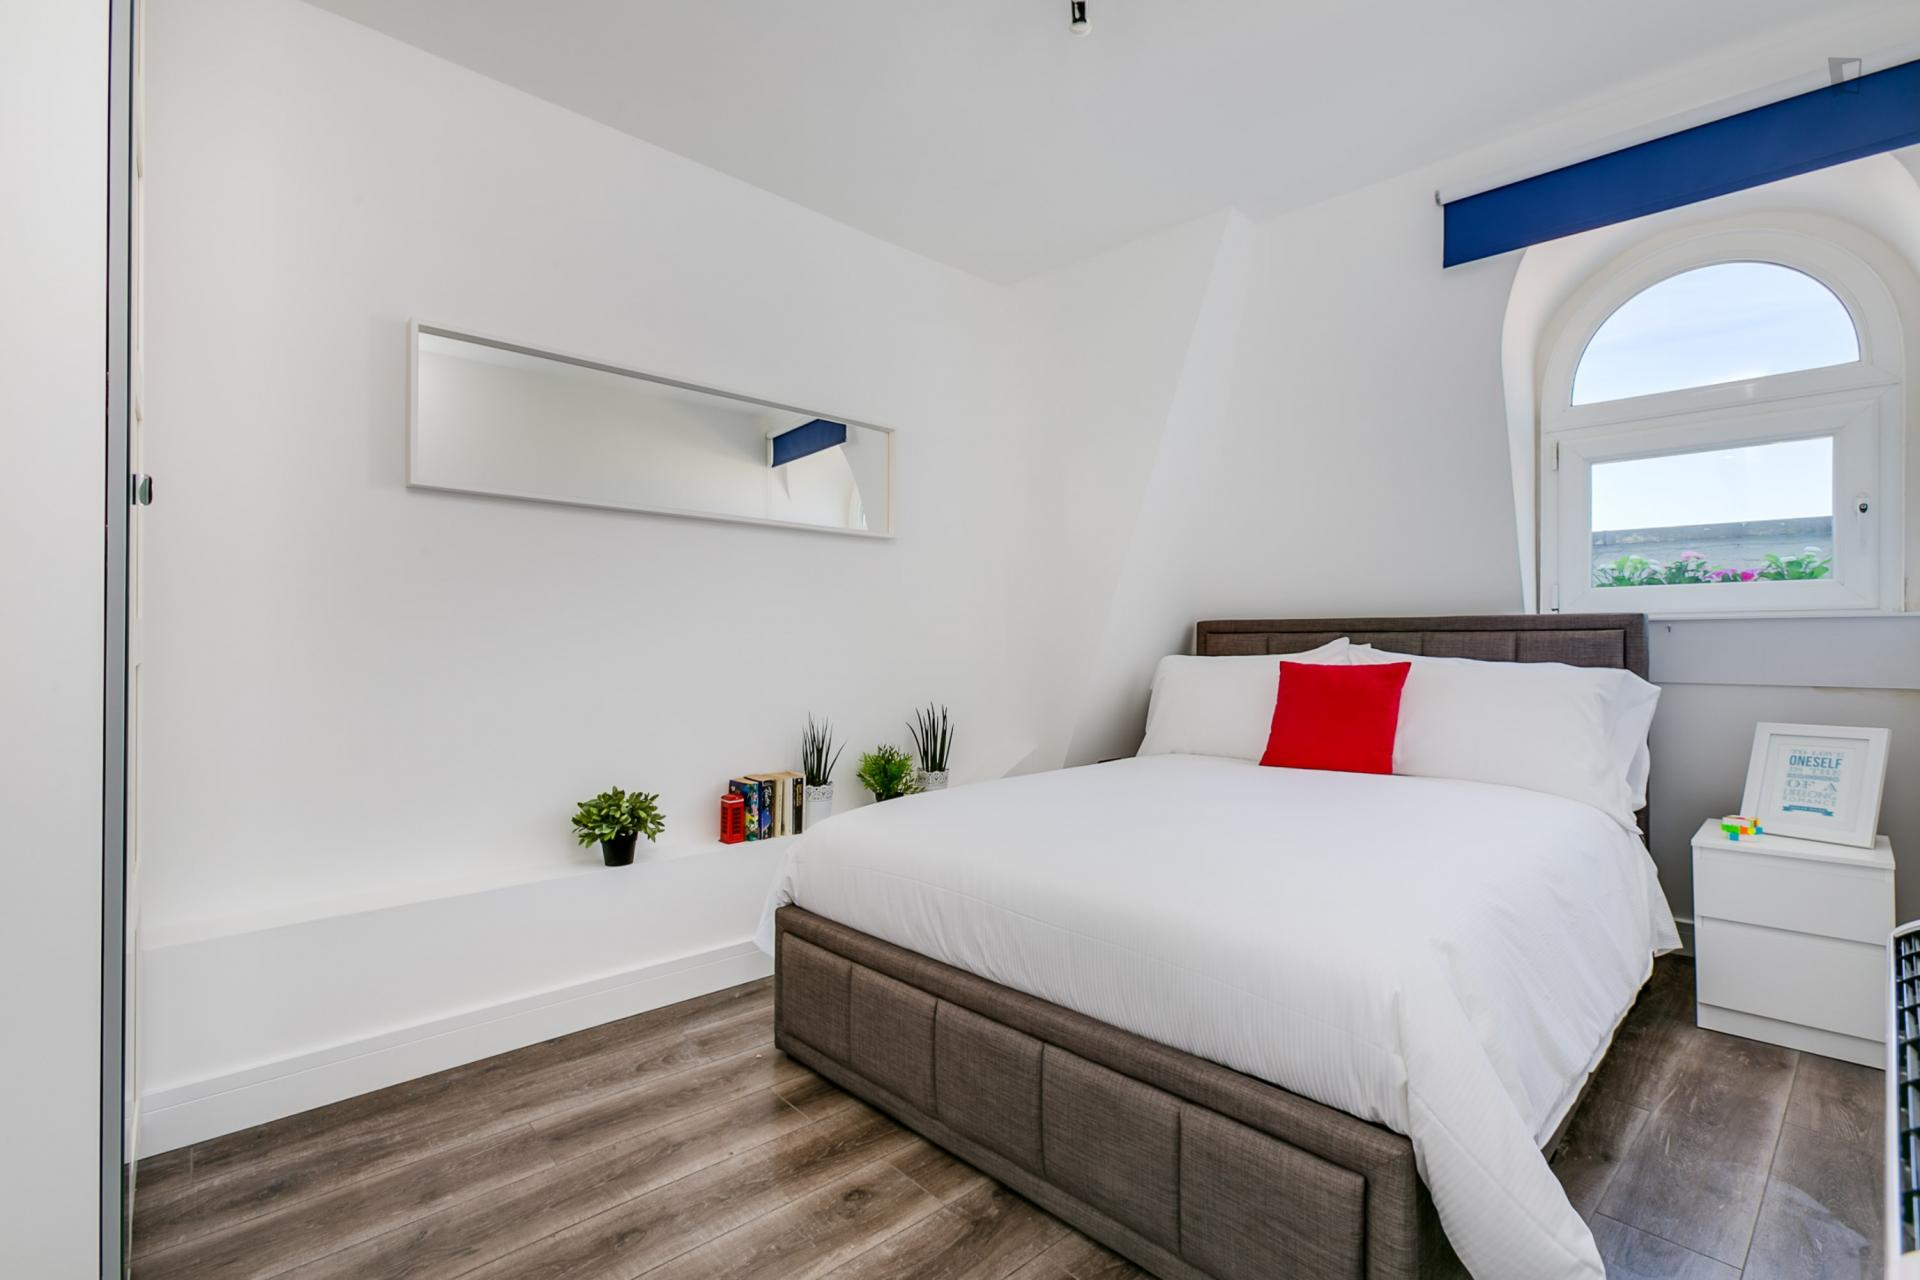 Moscow- Modern Shared Flat in London